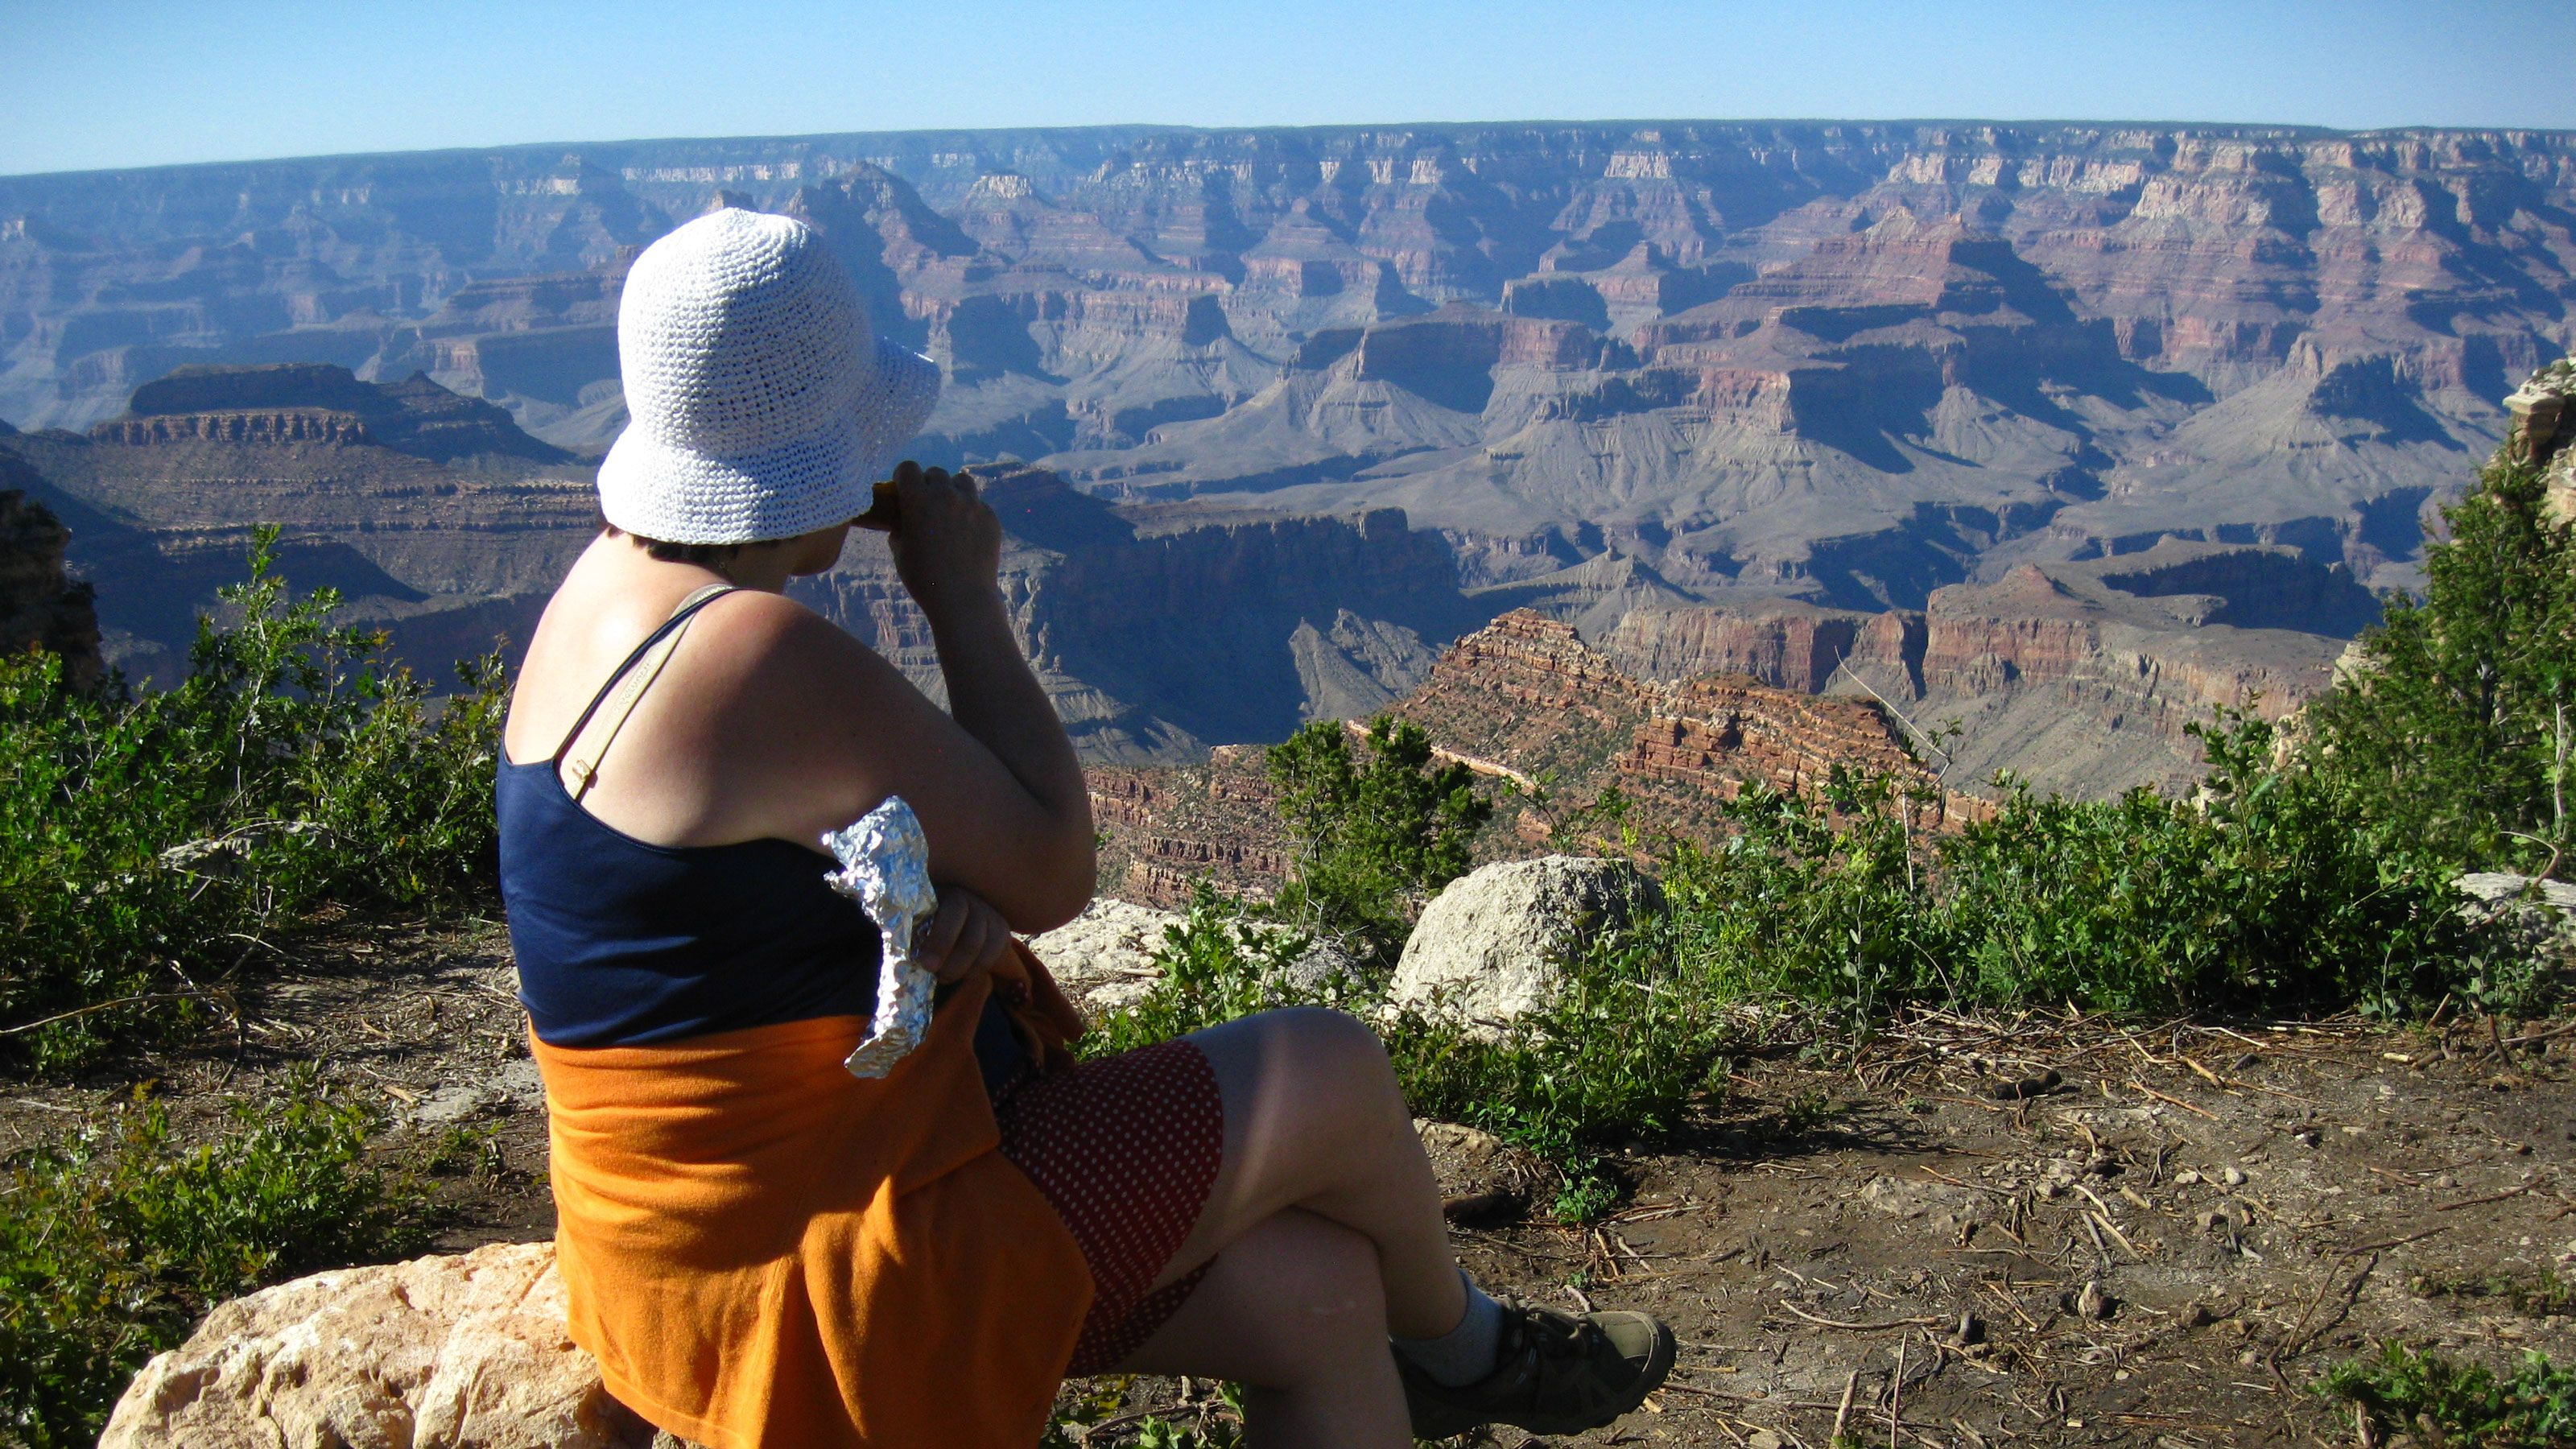 Woman enjoying the majestic view of the Grand Canyon